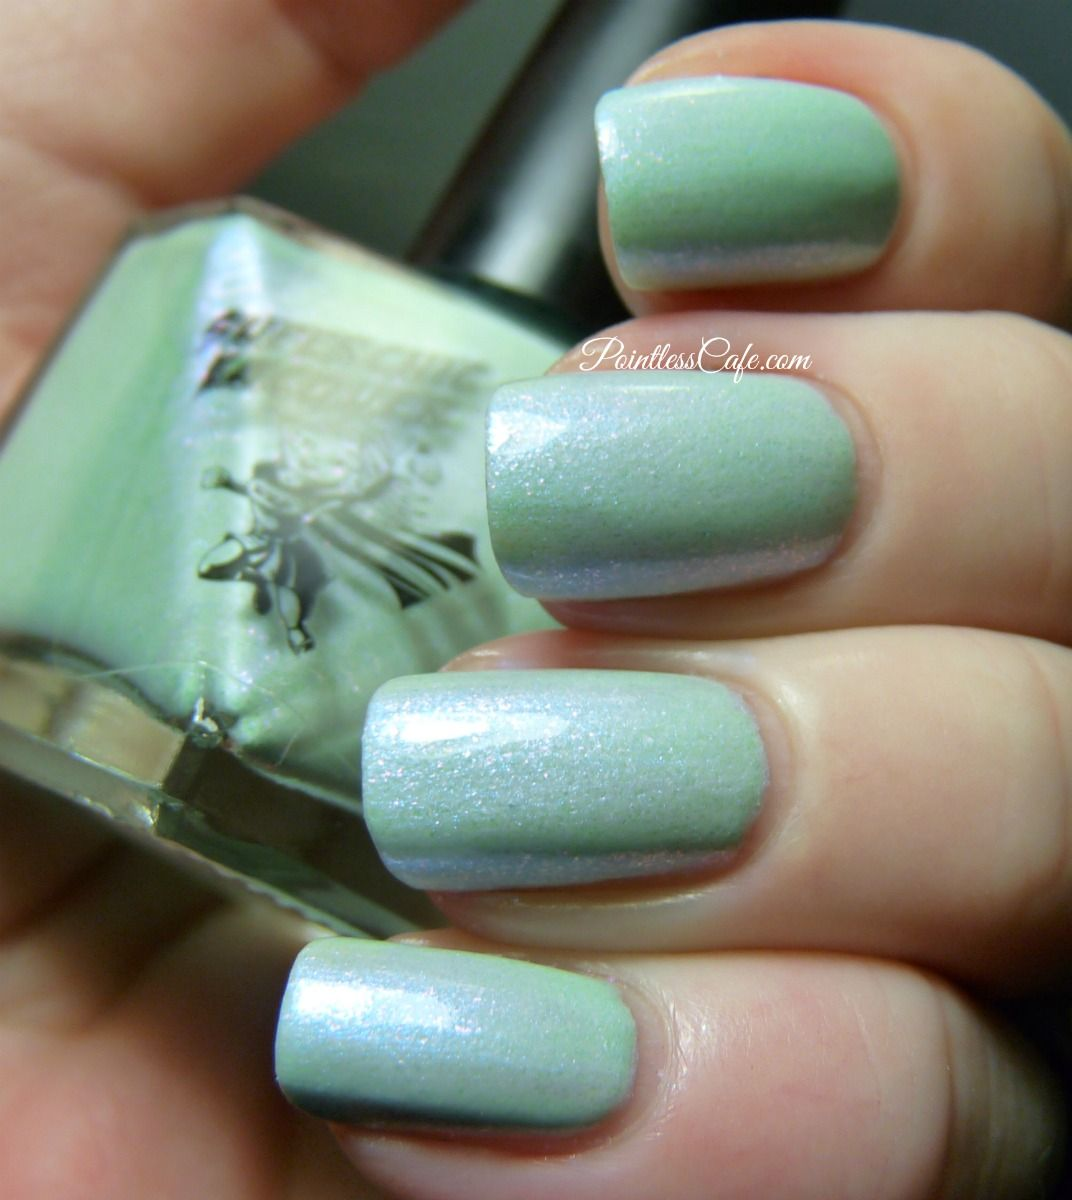 Superchic Lacquer Figment of My Reality | UÑAS**** SUTILES ...